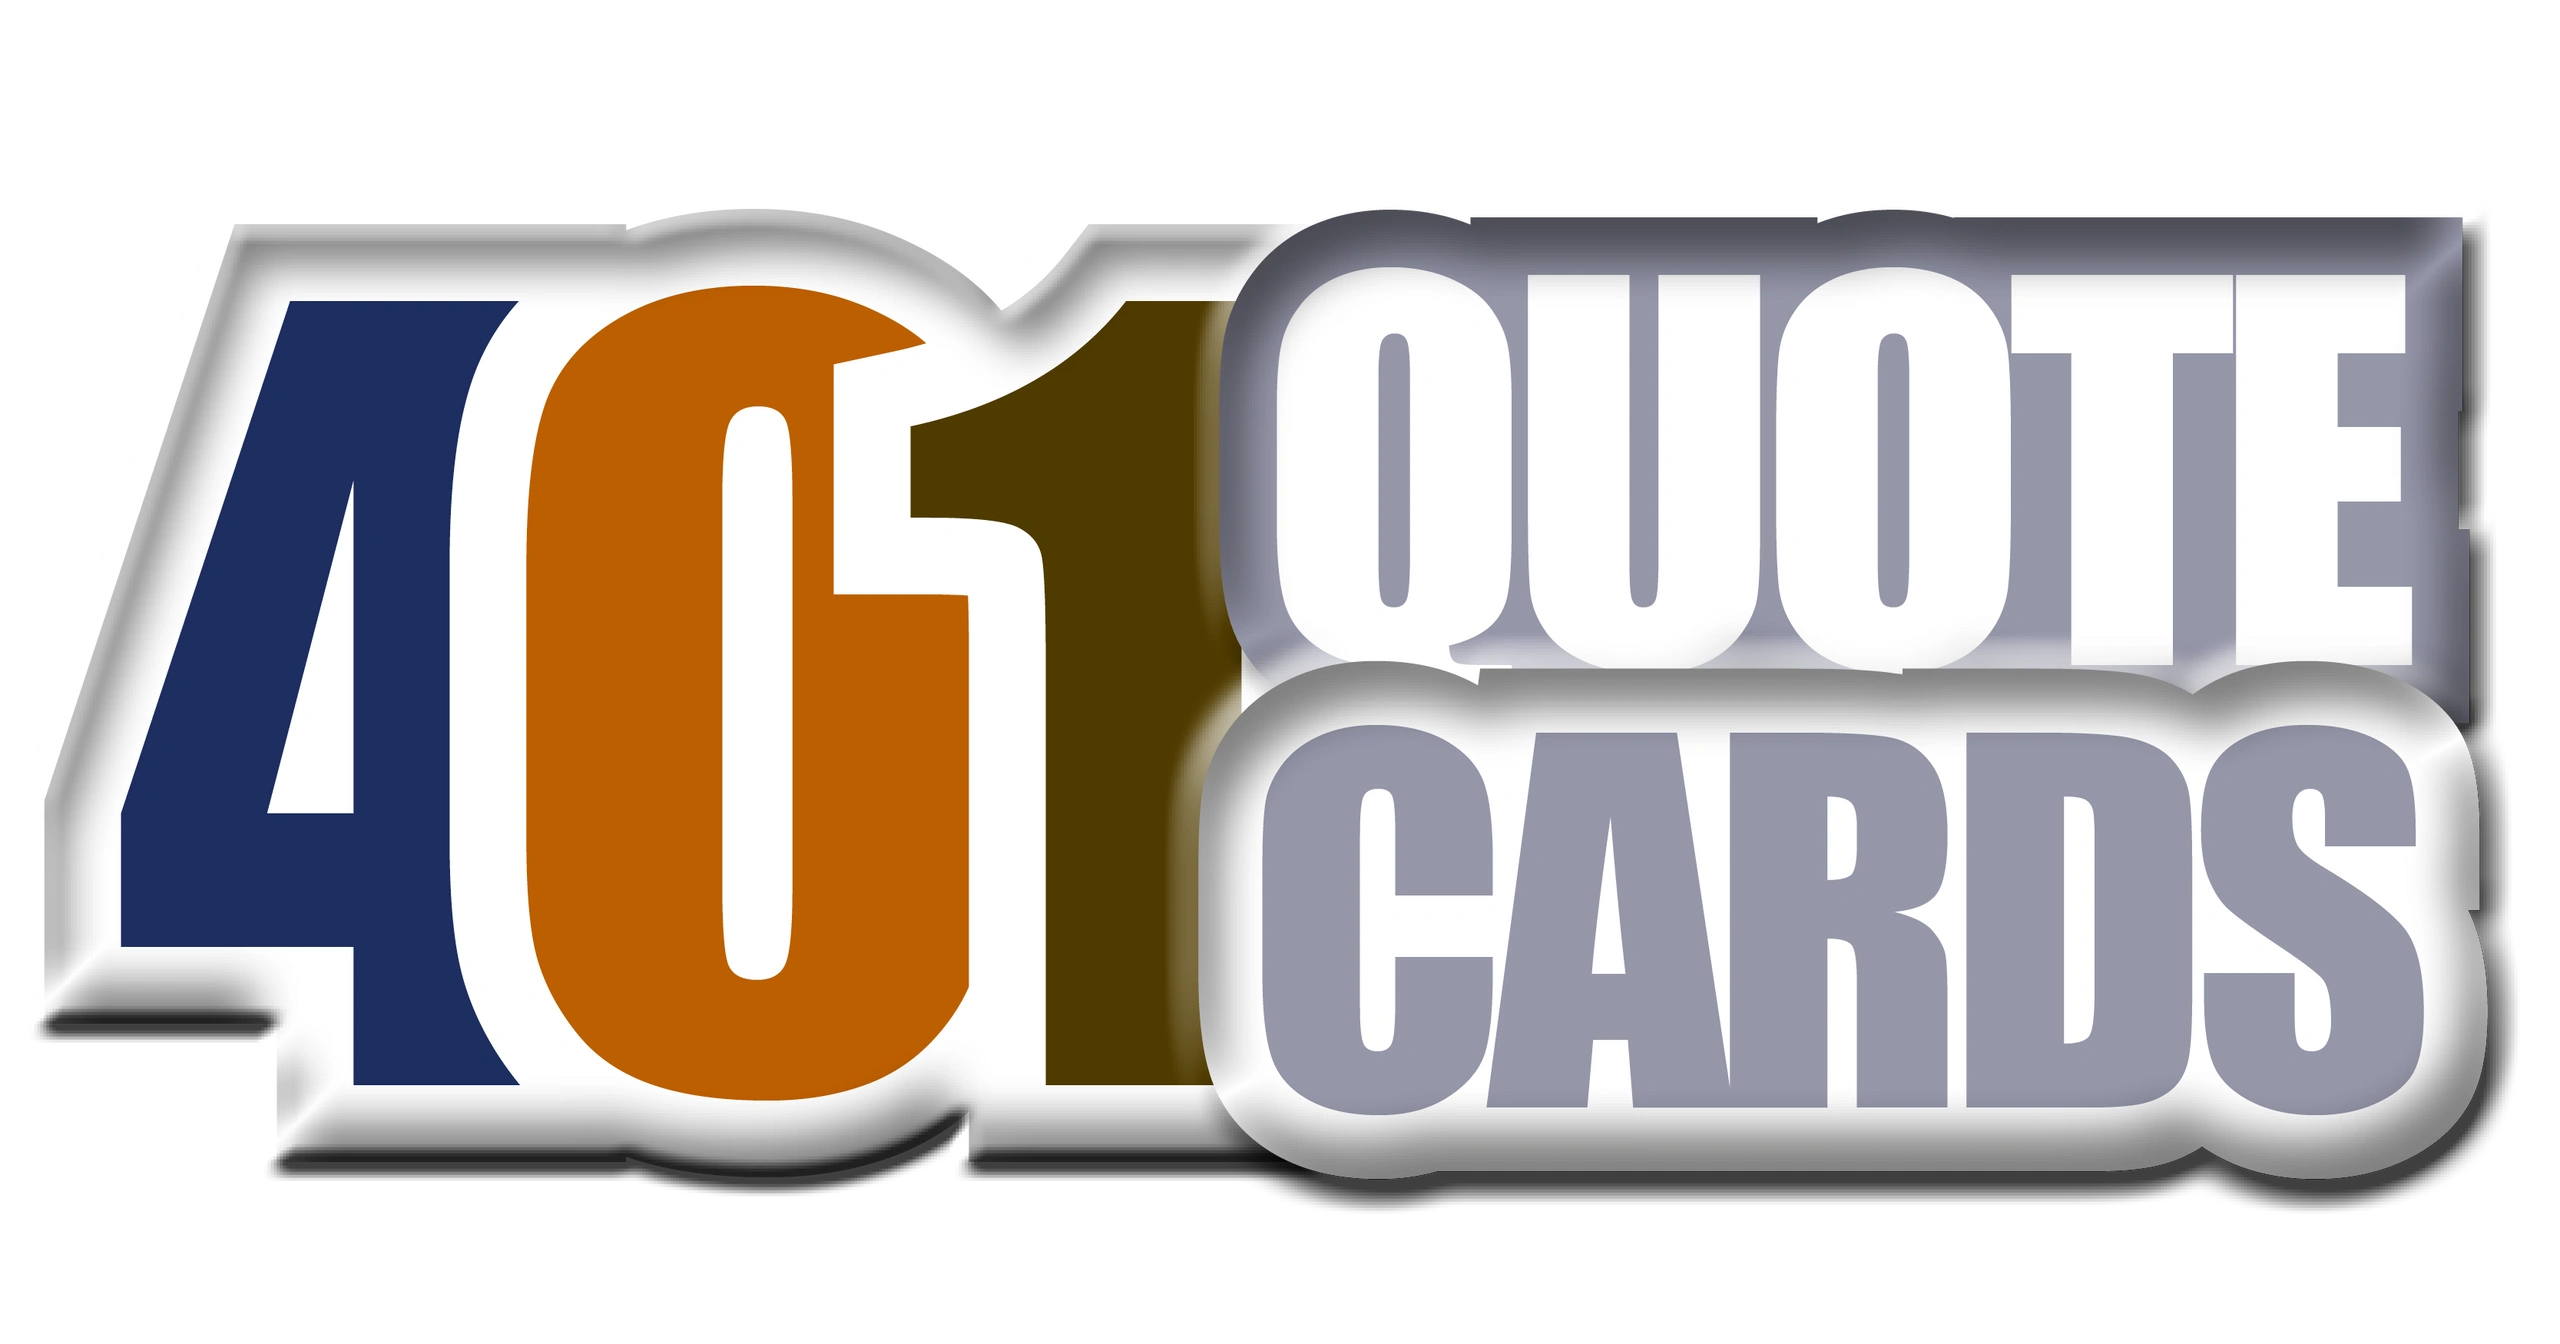 401 Quote Cards original logo.  2000 quotes from history's great minds.  The 401 Book. Genpopmedia.